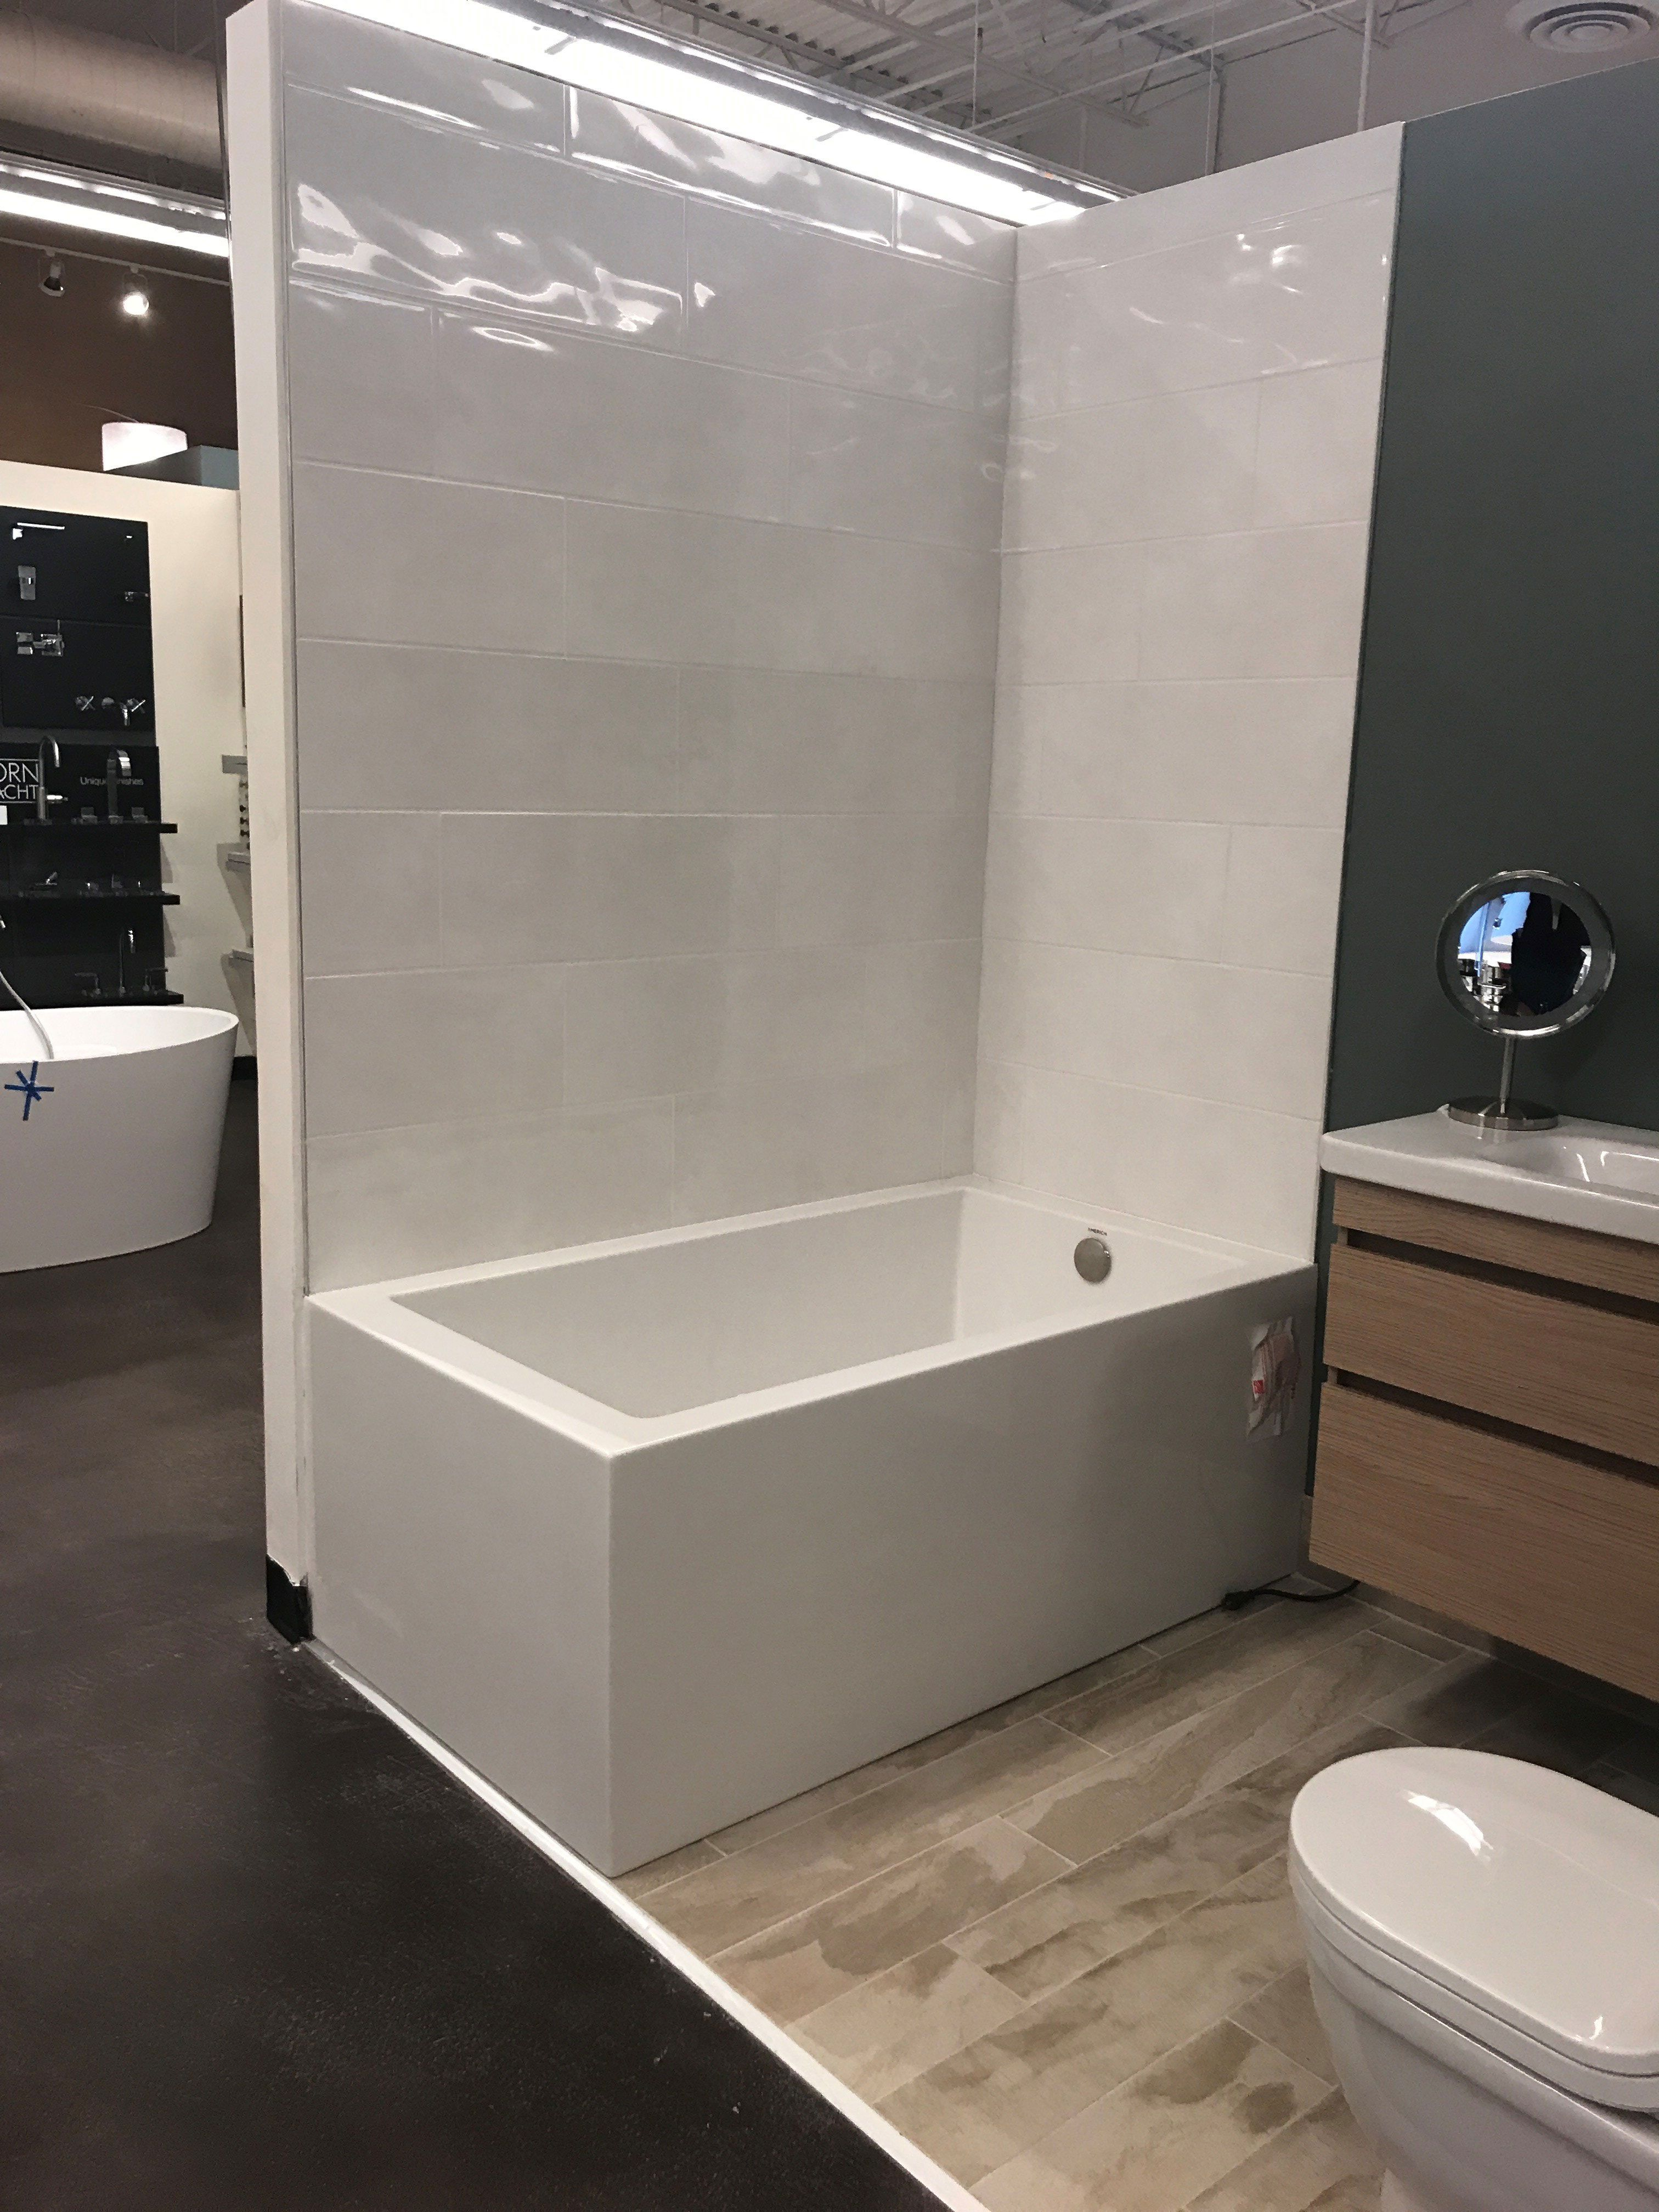 Americh Turo Tub @ The KB Studio (CO) - 10/2017 | Showroom Displays ...